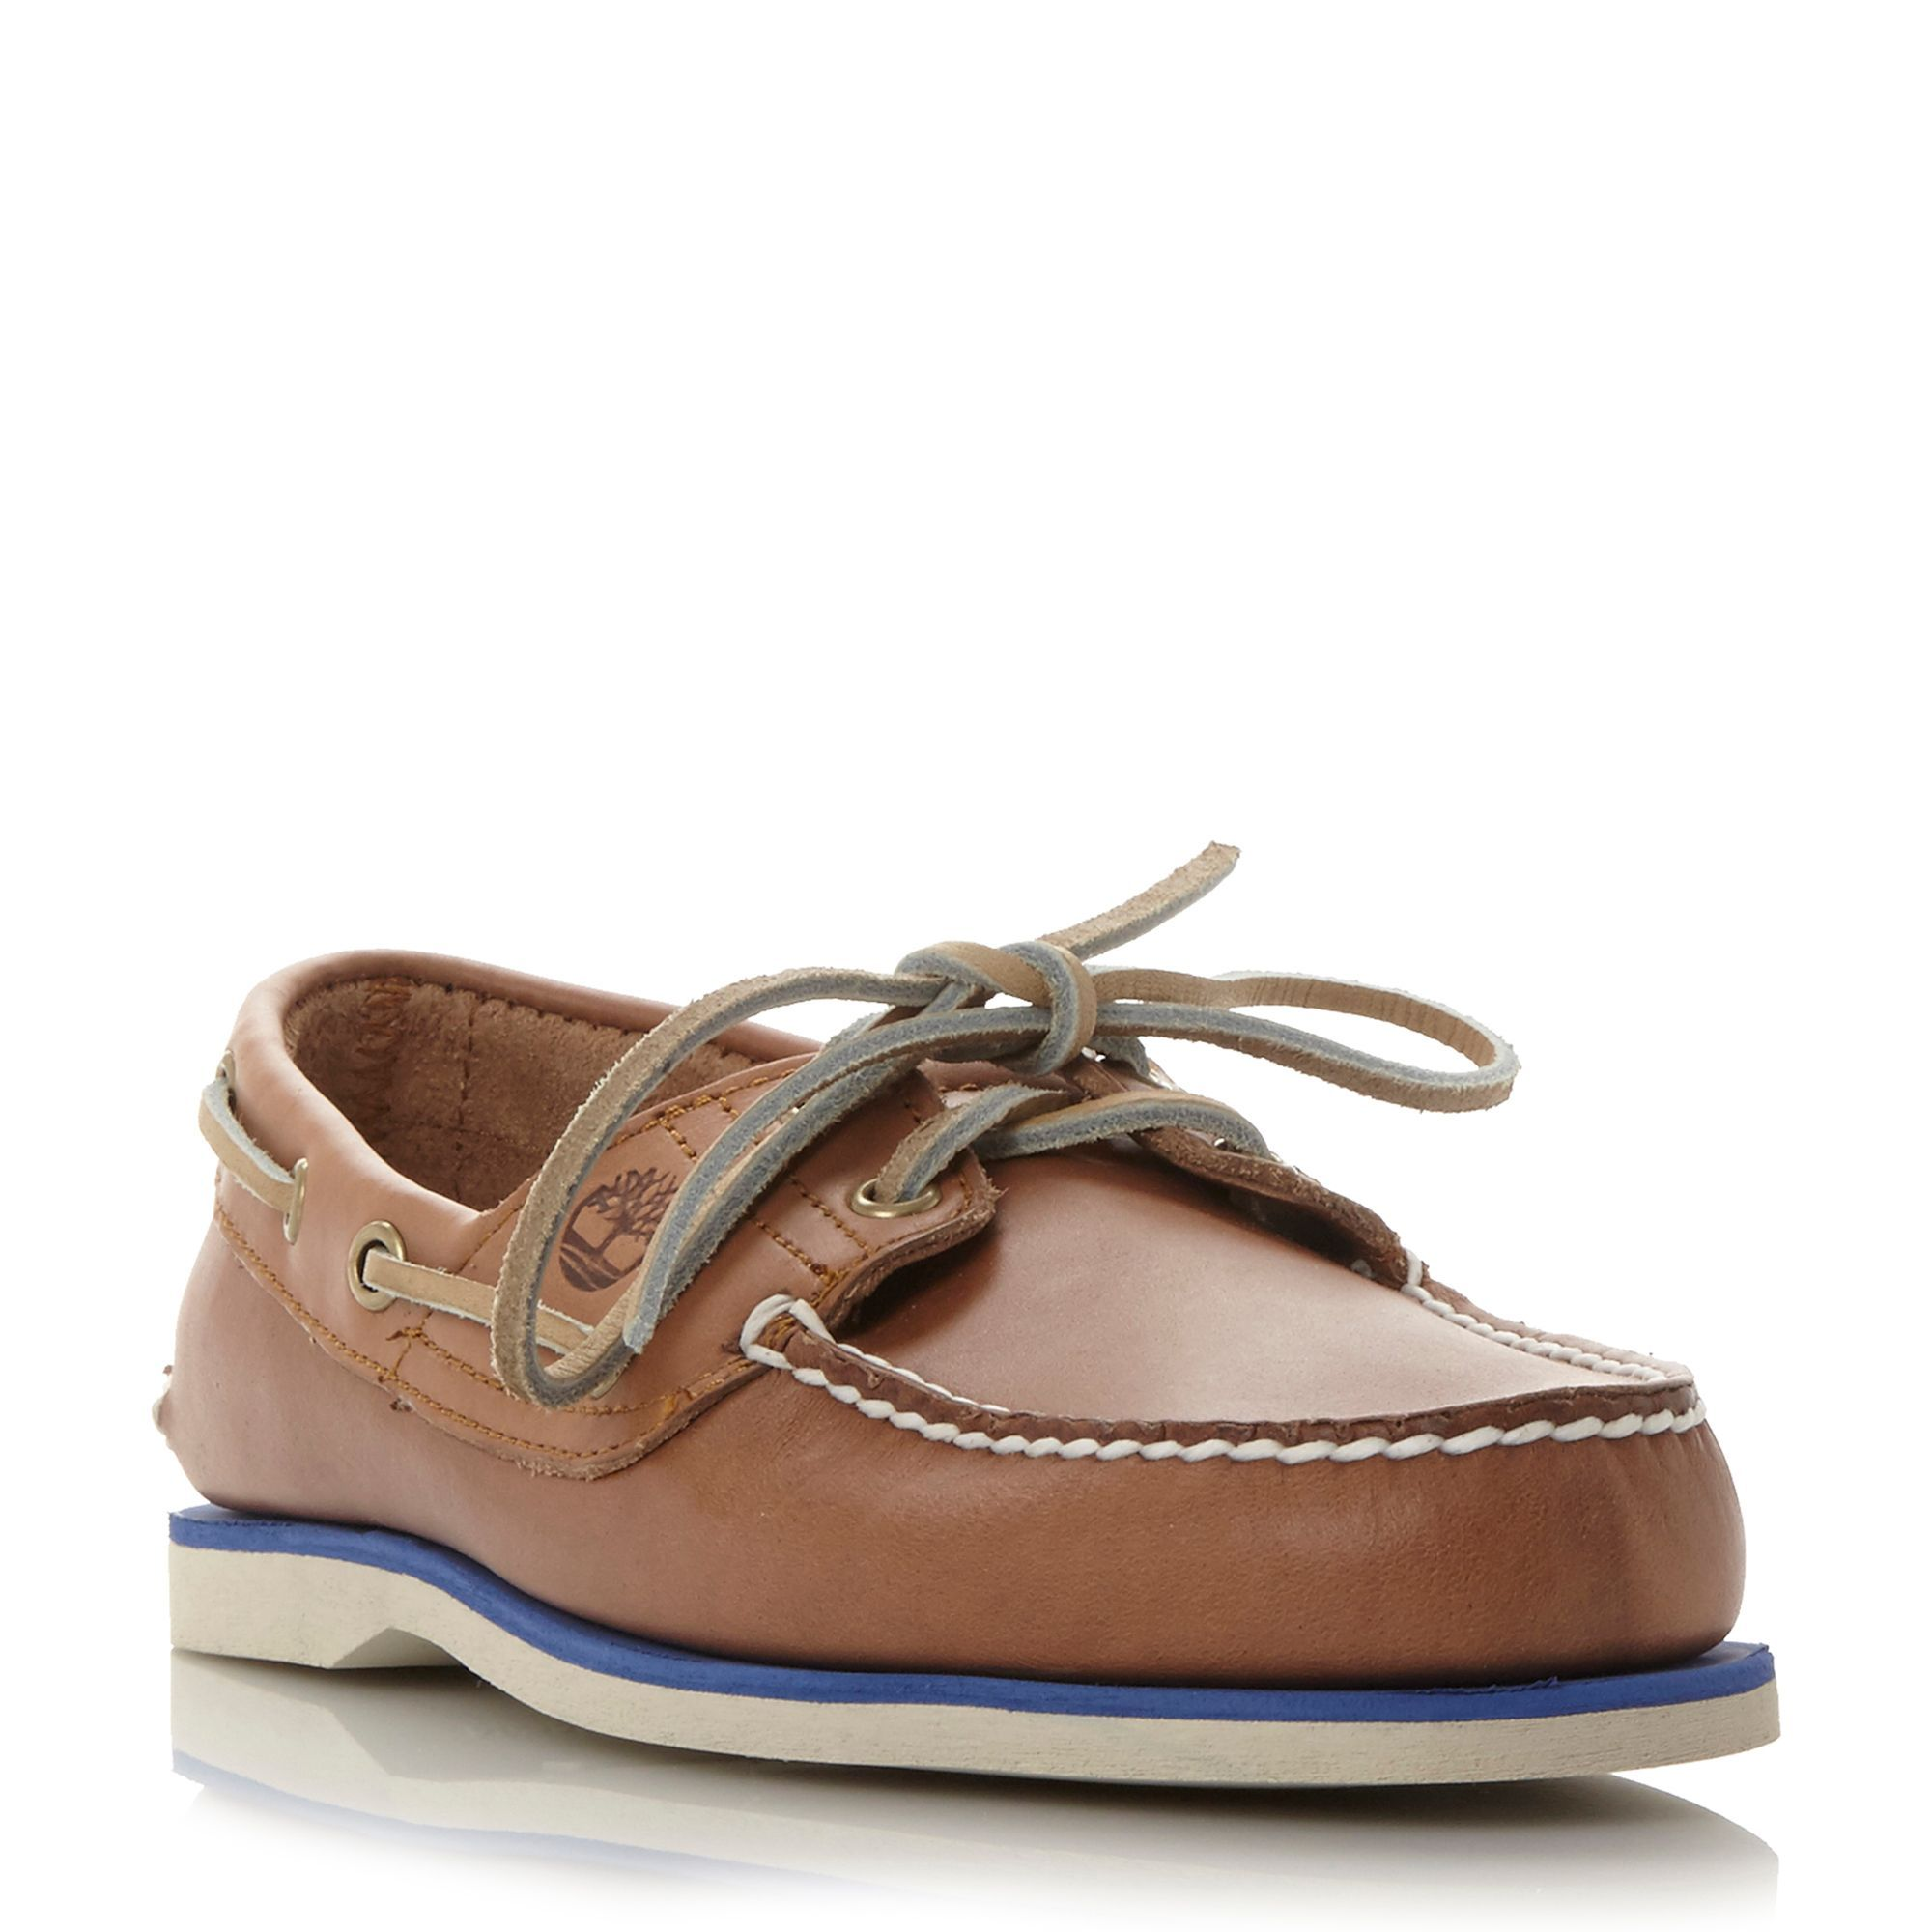 Timberland A16m8 colour pop boat shoe, Tan | Boat shoes